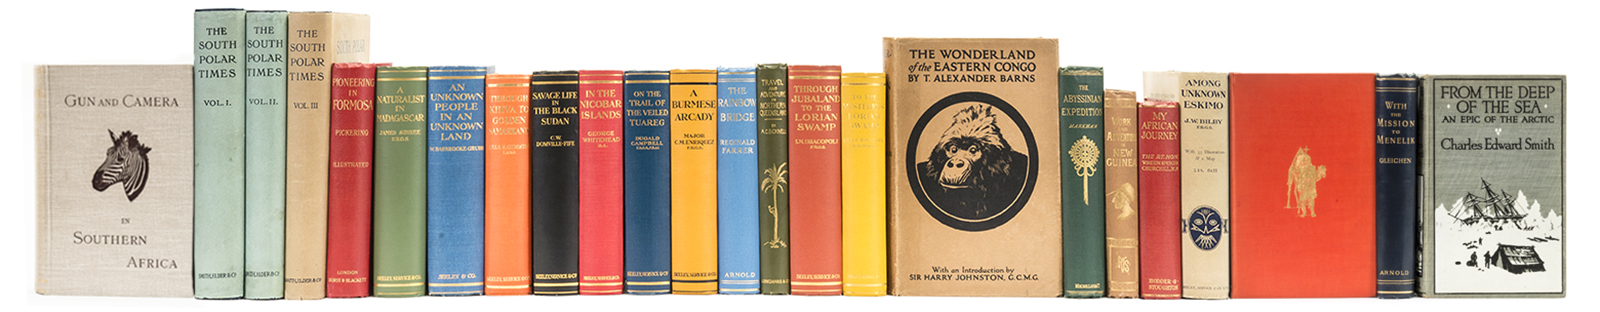 Online Sale: Remaining books from the Library of Franklin Brooke-Hitching